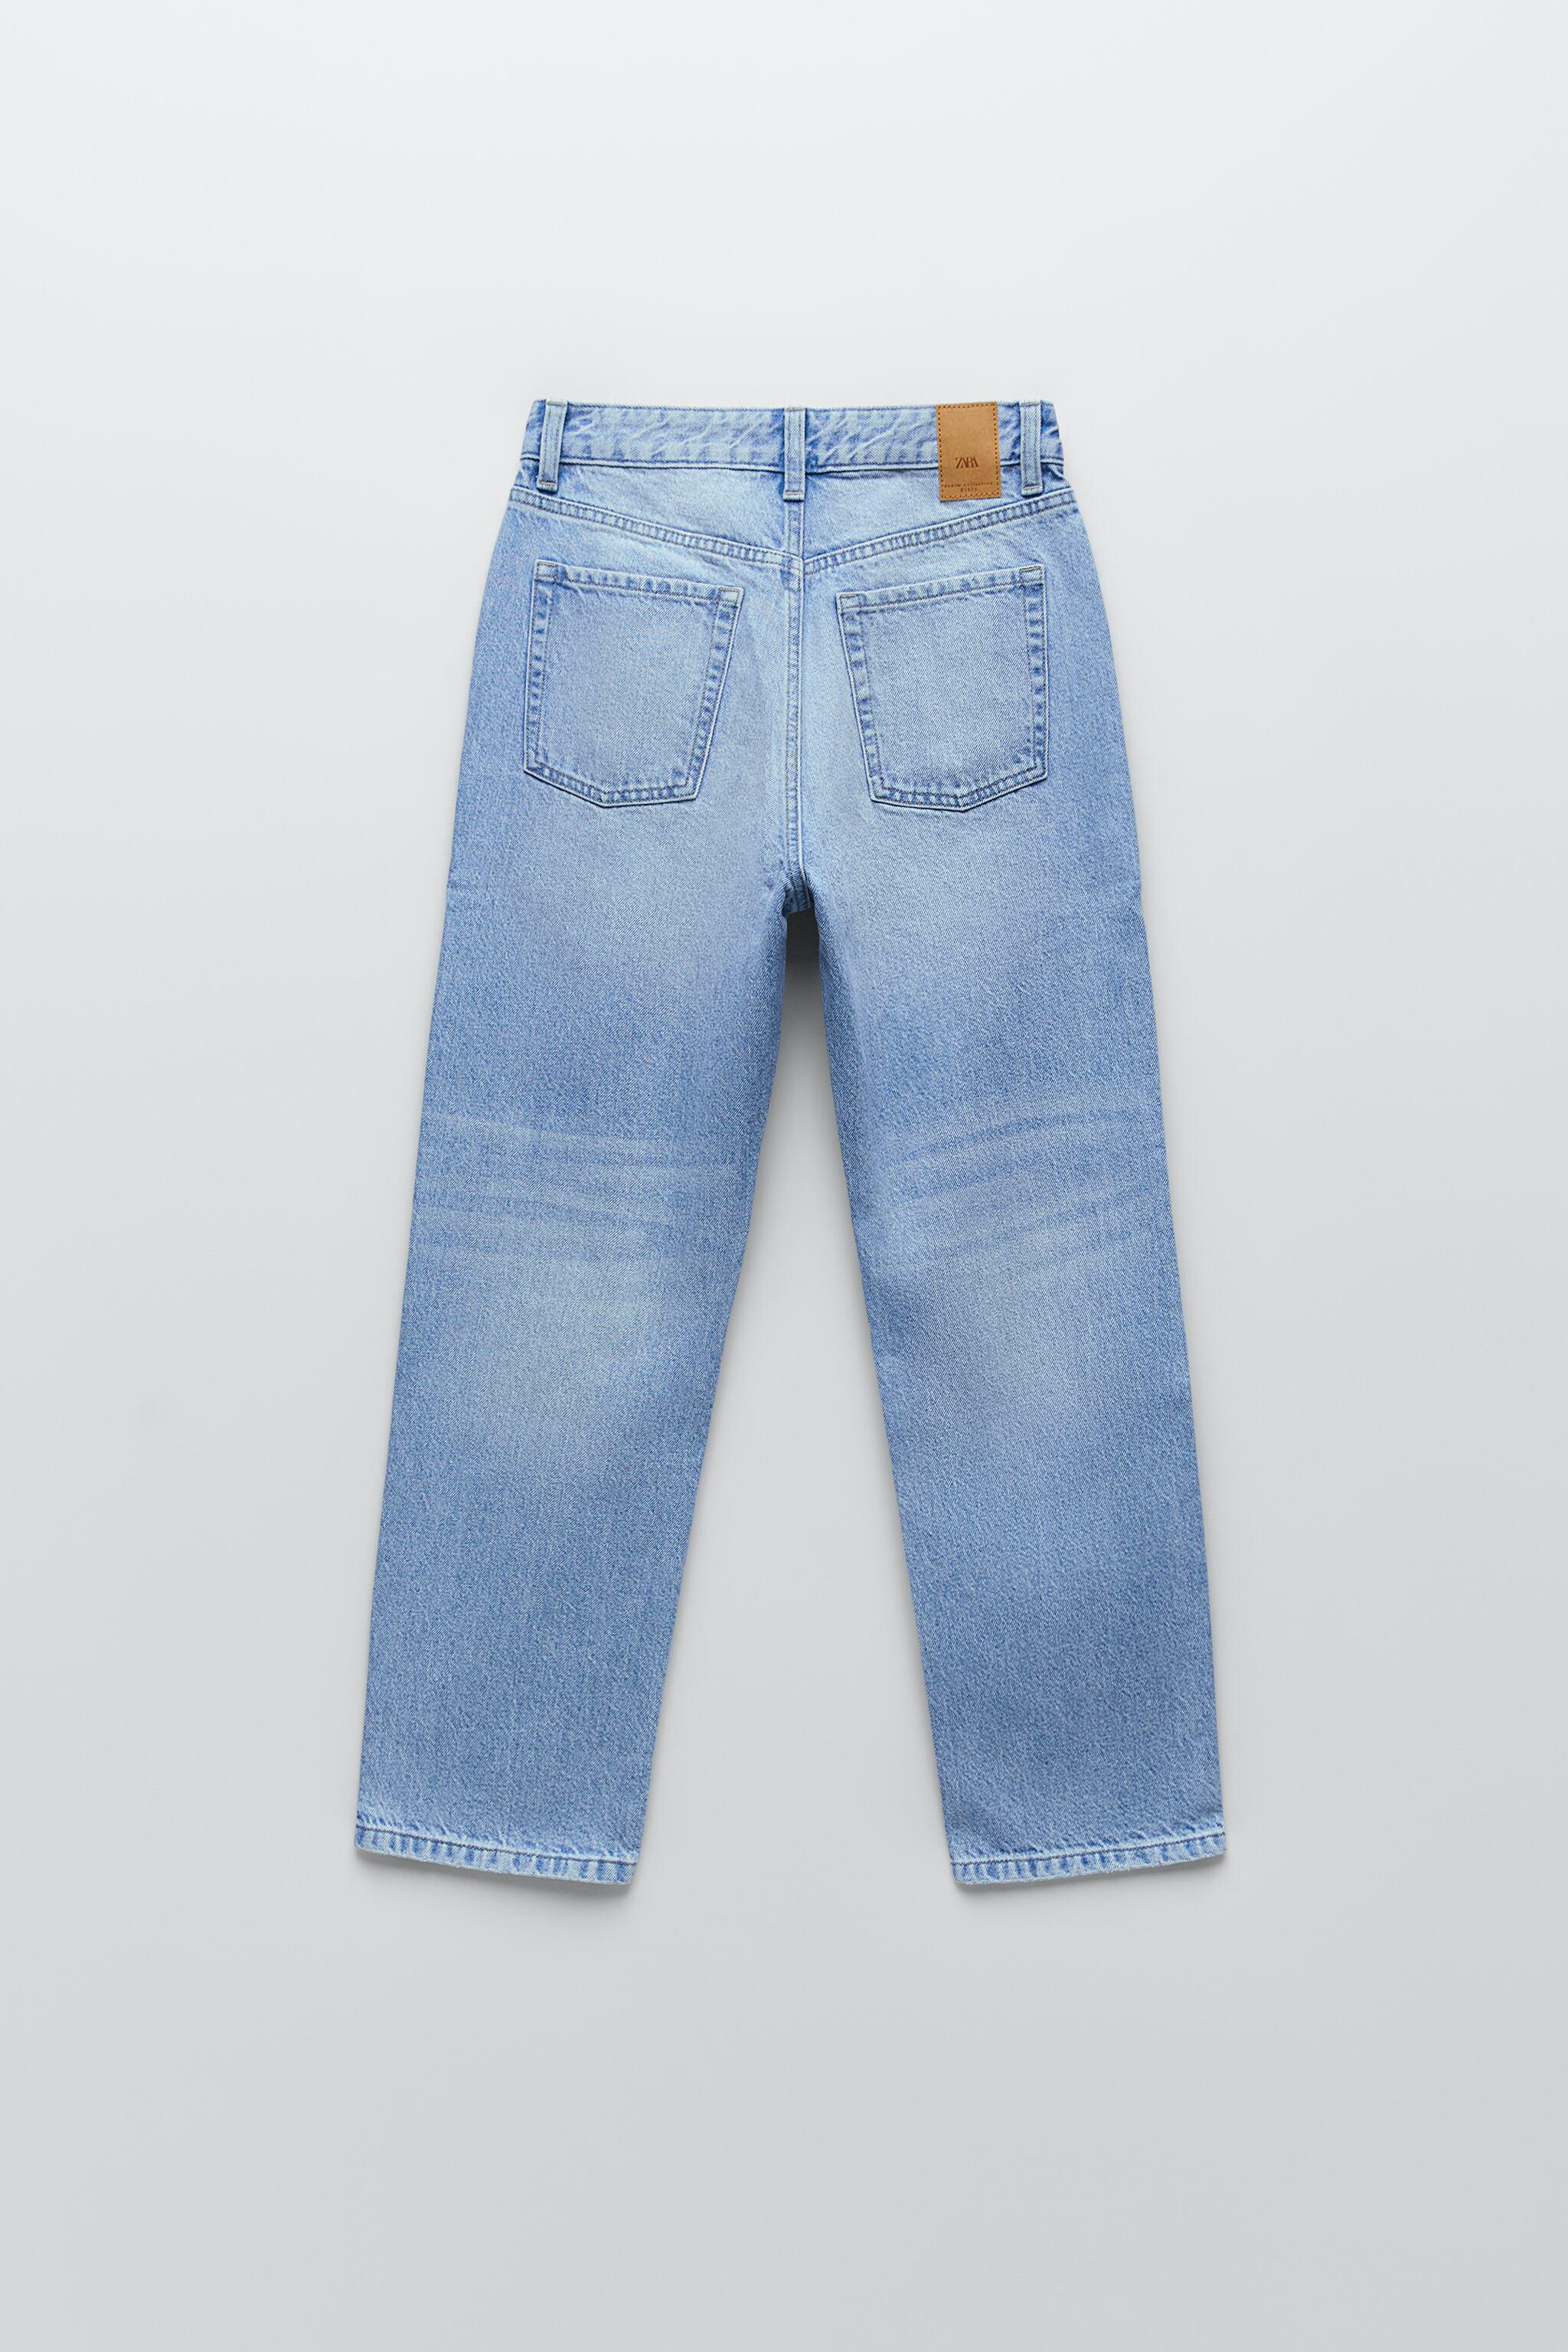 Z1975 HIGH RISE TAPERED JEANS 6